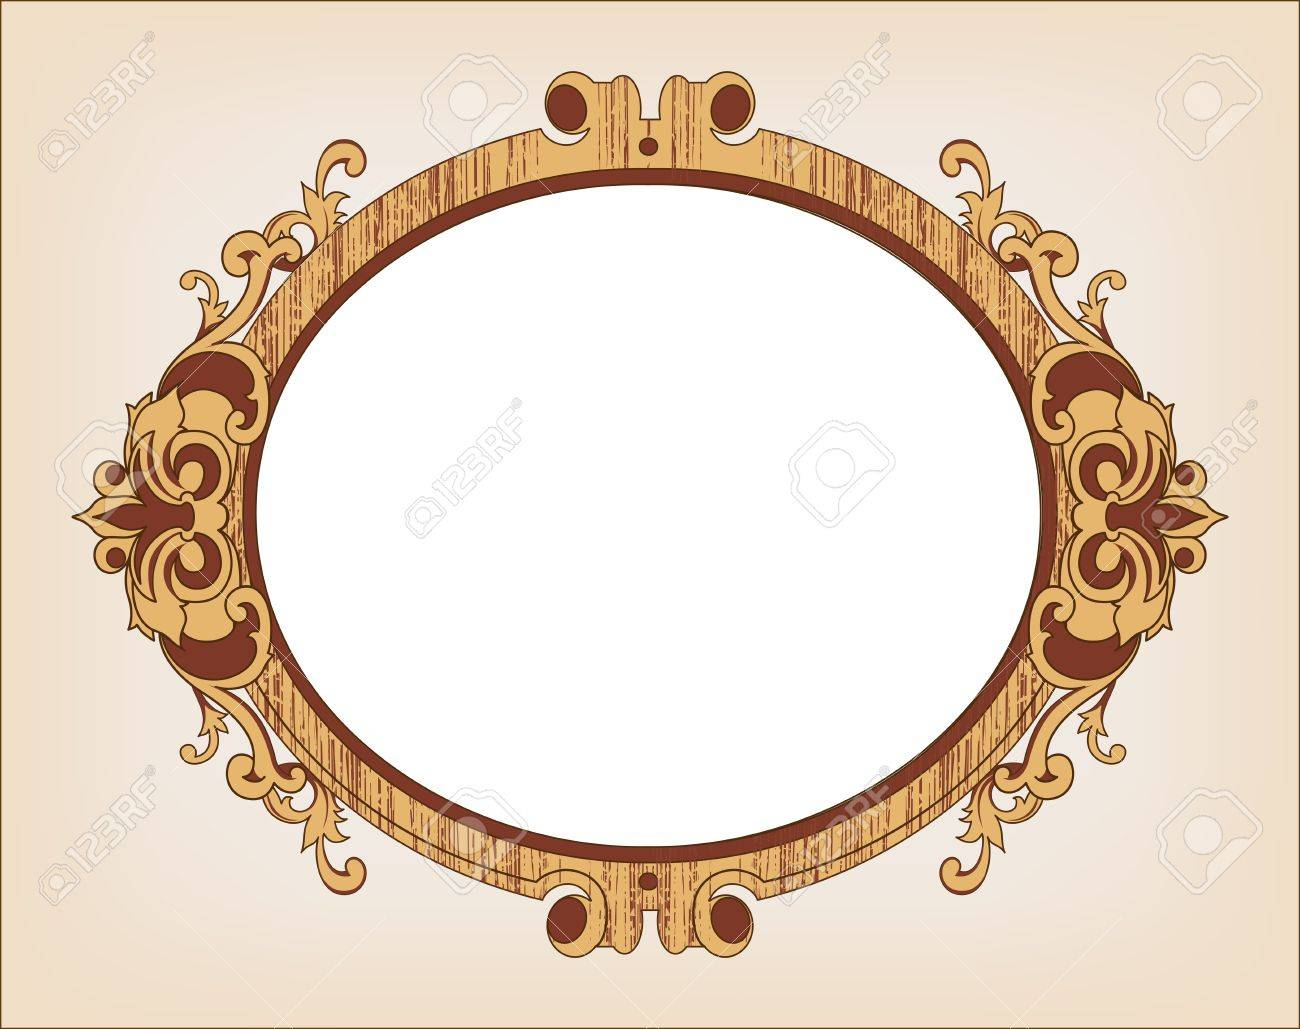 Decorative oval vintage frame Stock Vector - 17879055